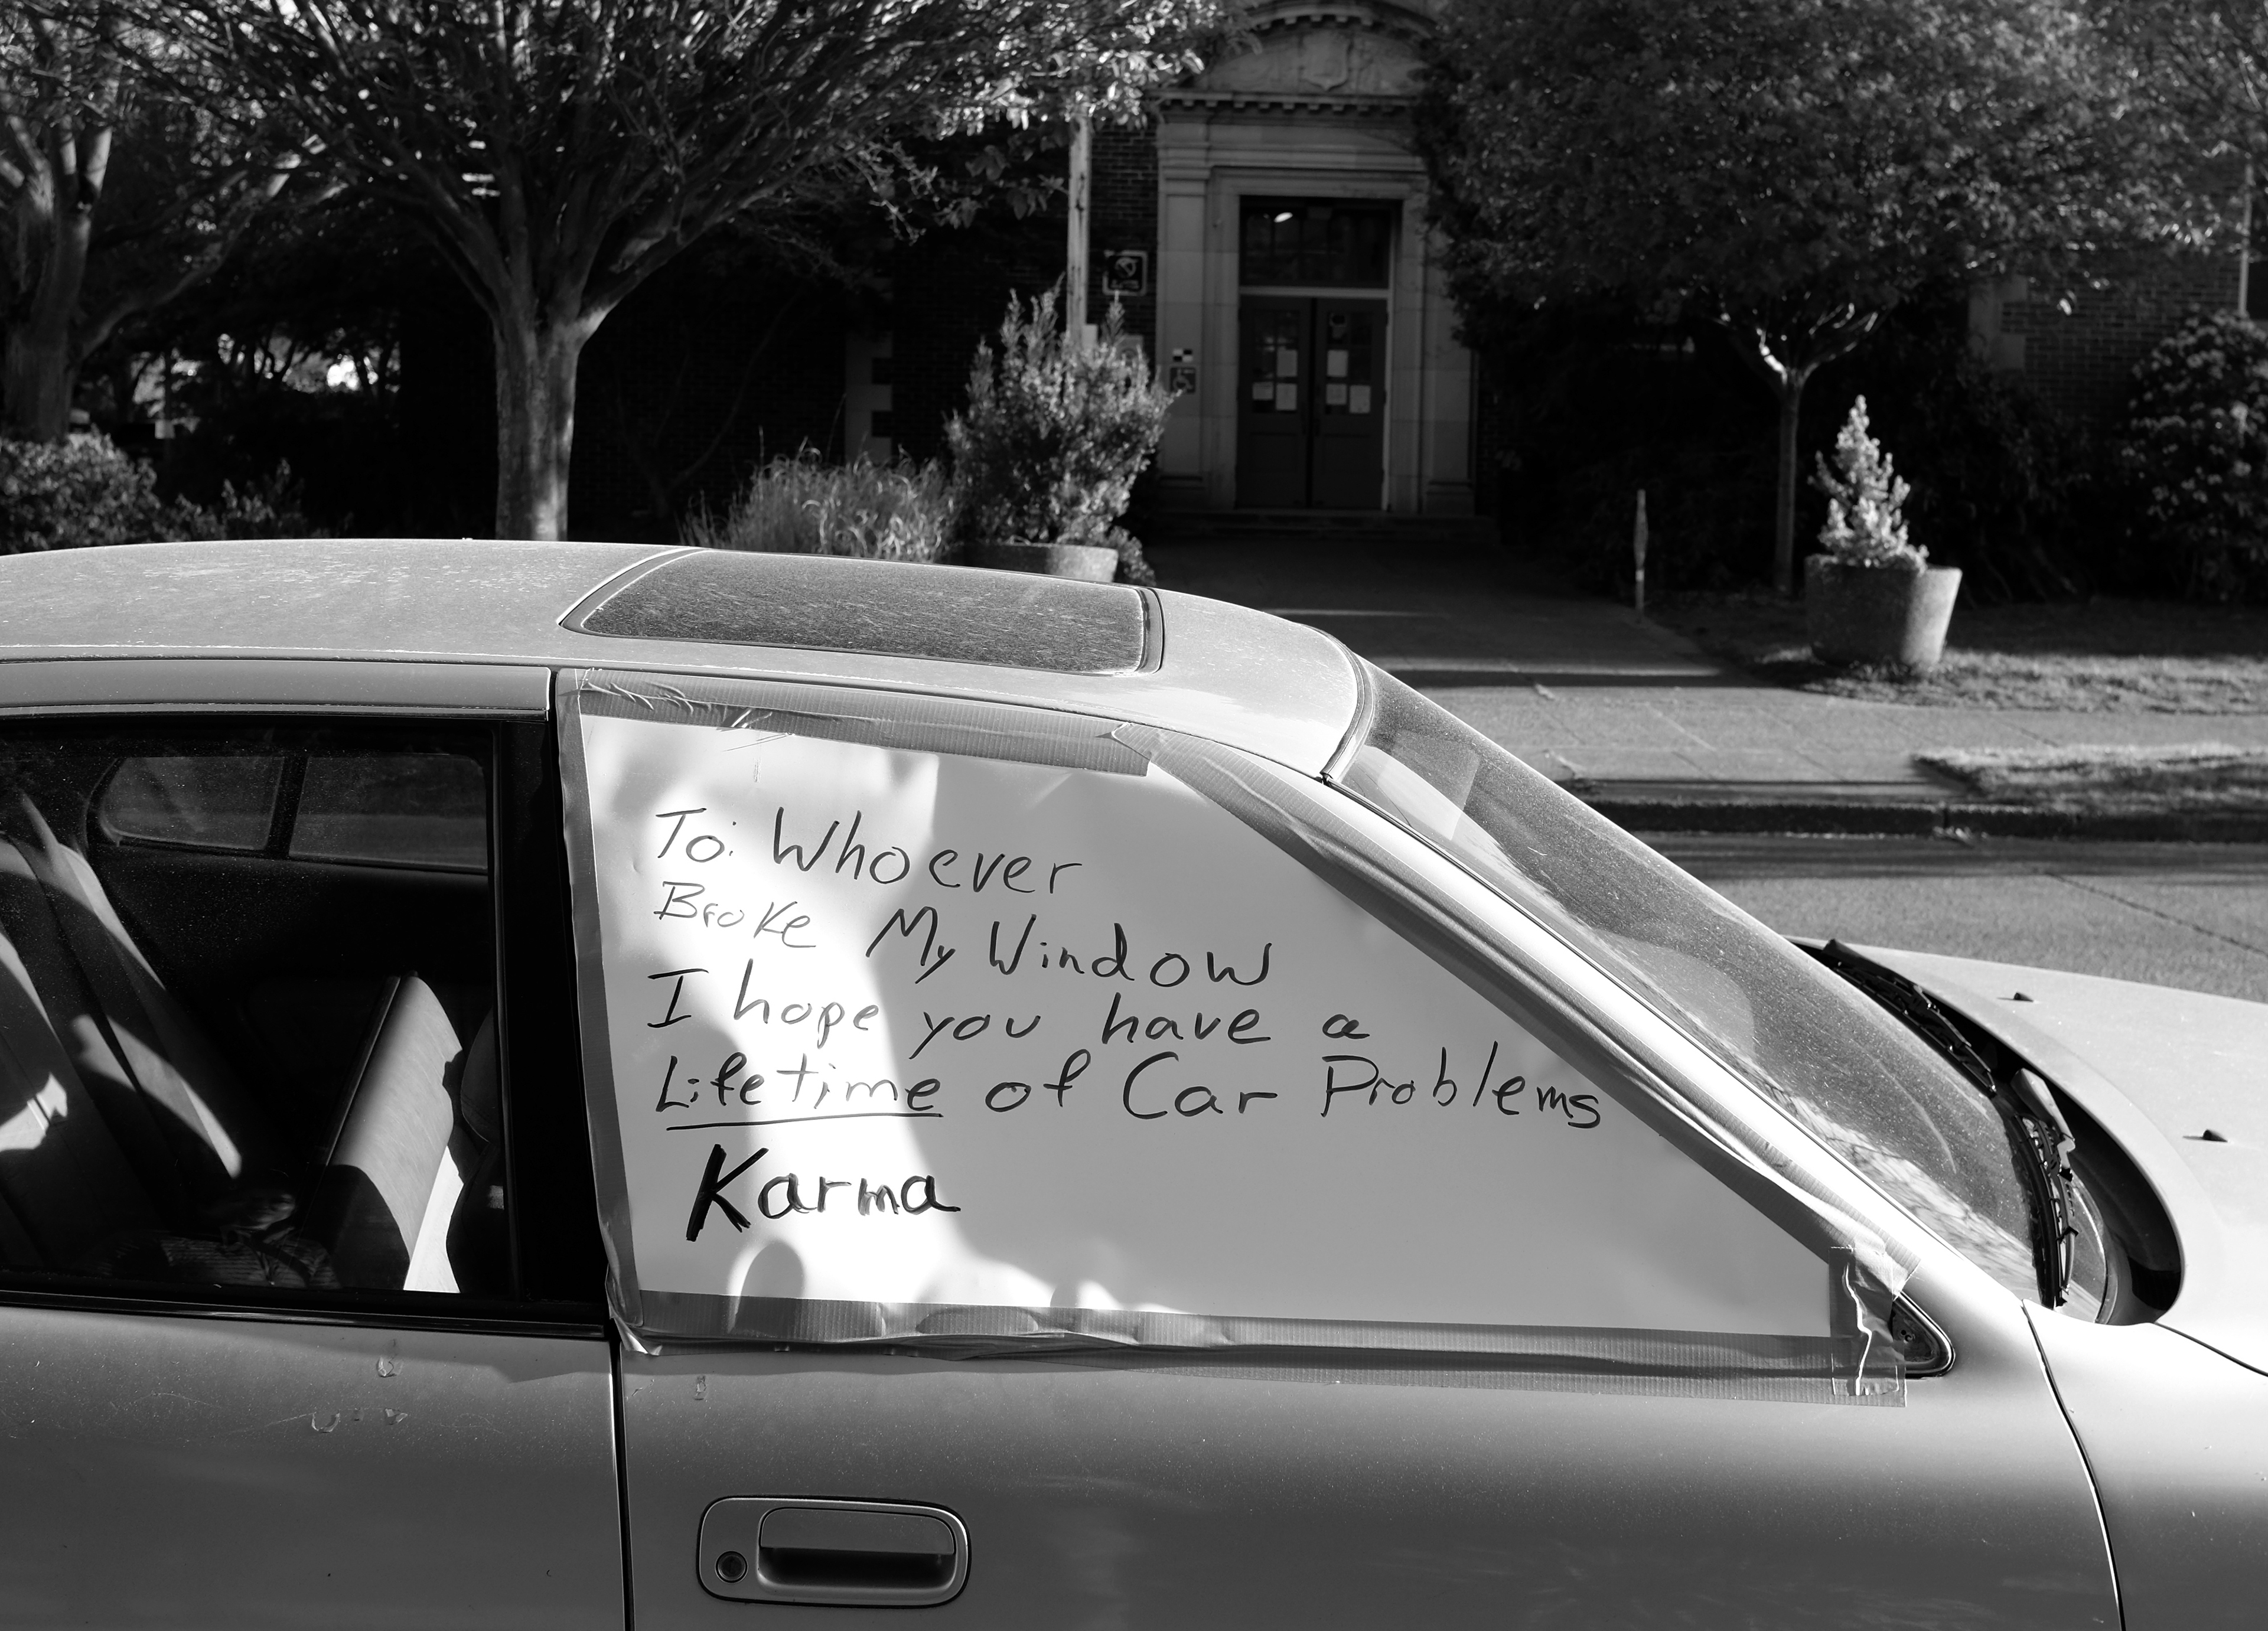 "A large note covers a broken car window. It reads ""To whoever broke my window I hope you have a lifetime of car problems karma"""